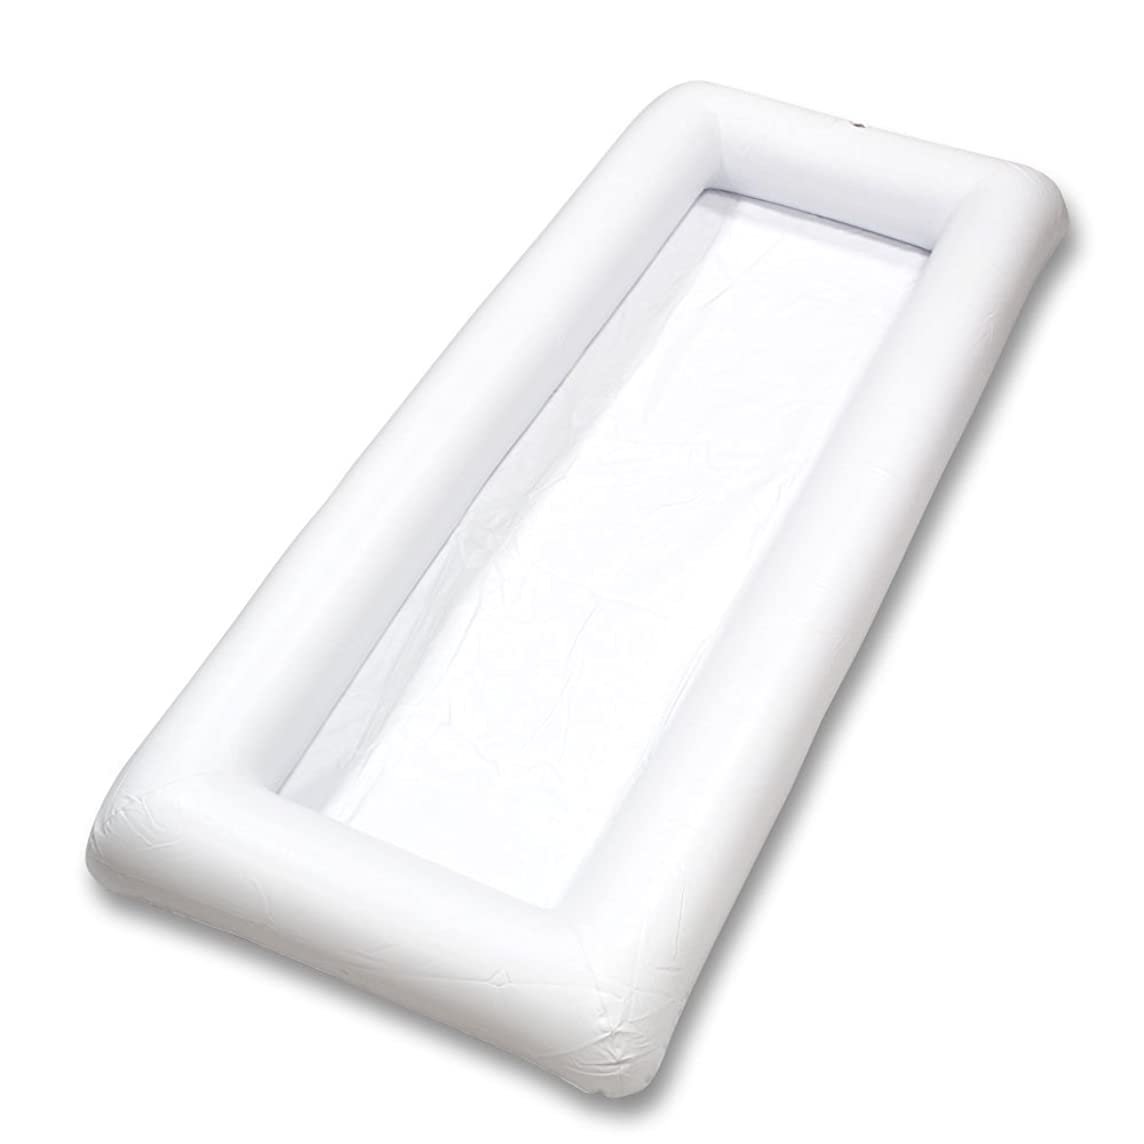 Cool Downz Inflatable Salad/Serving Bar, White, 51